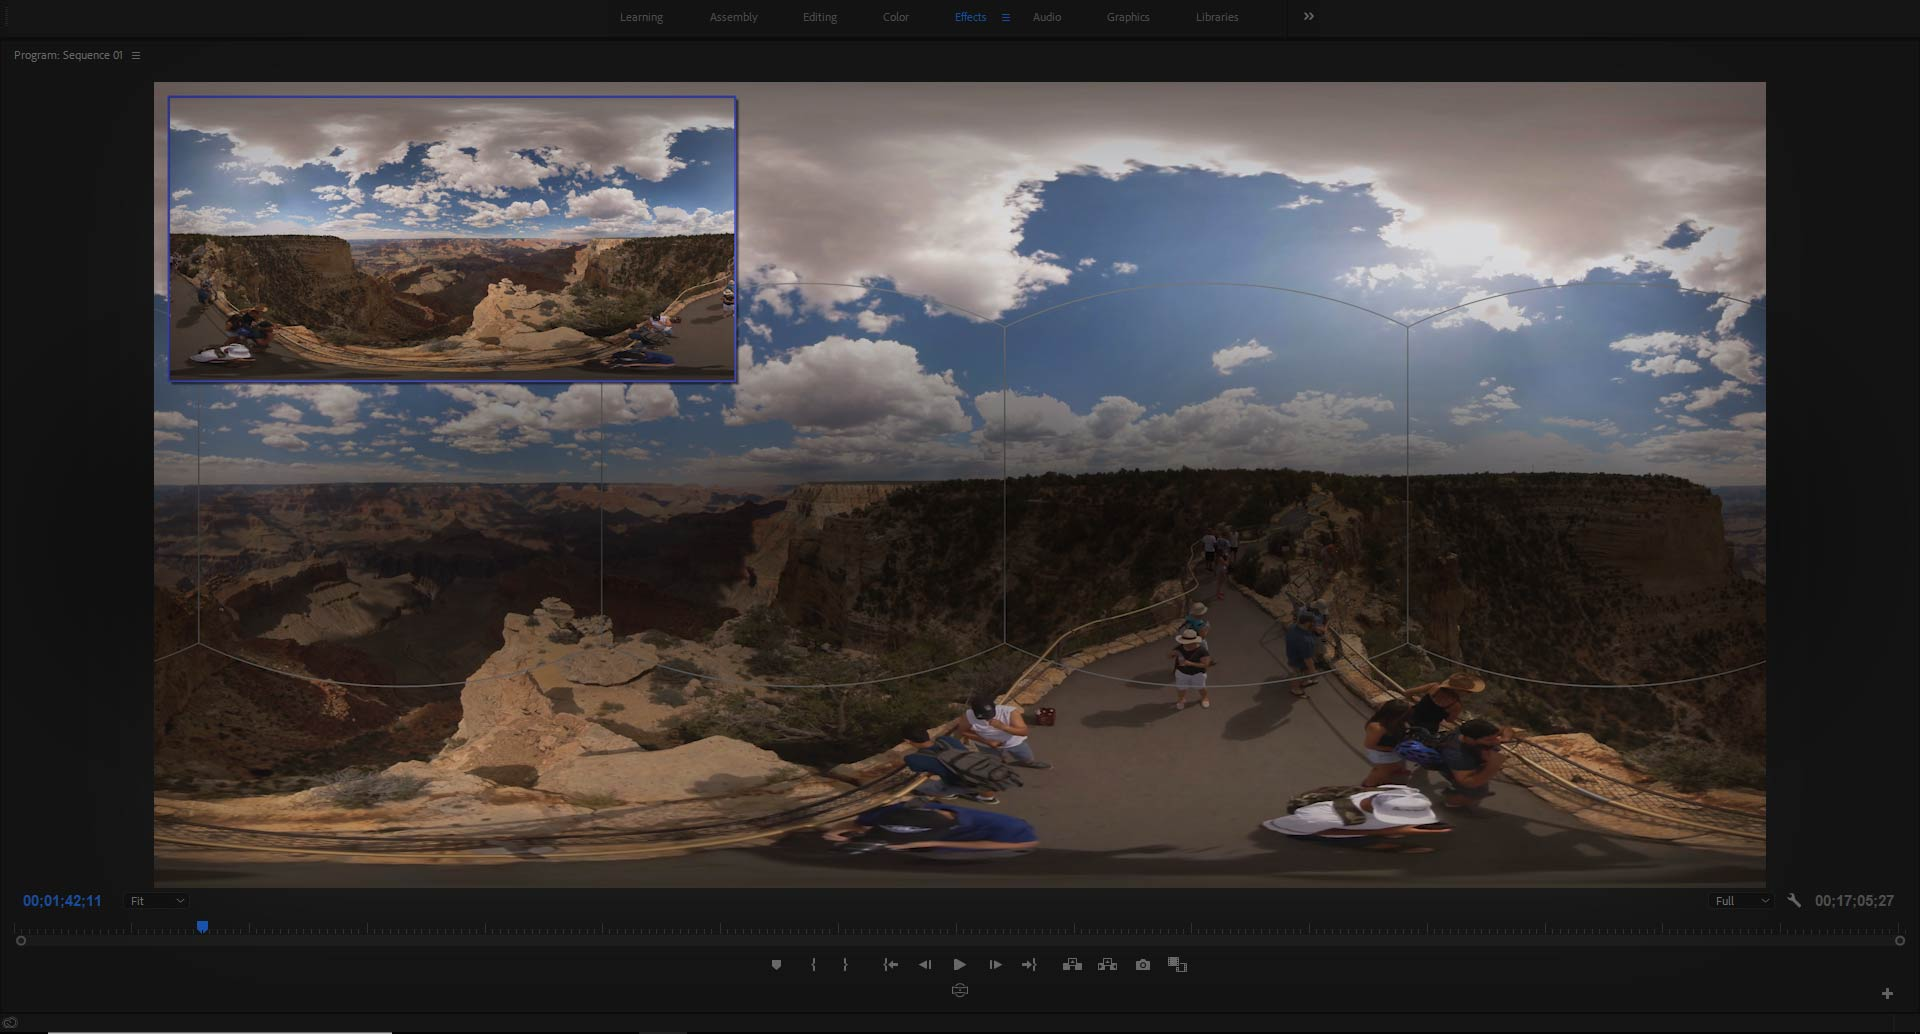 A 360 degree image of the Grand Canyon